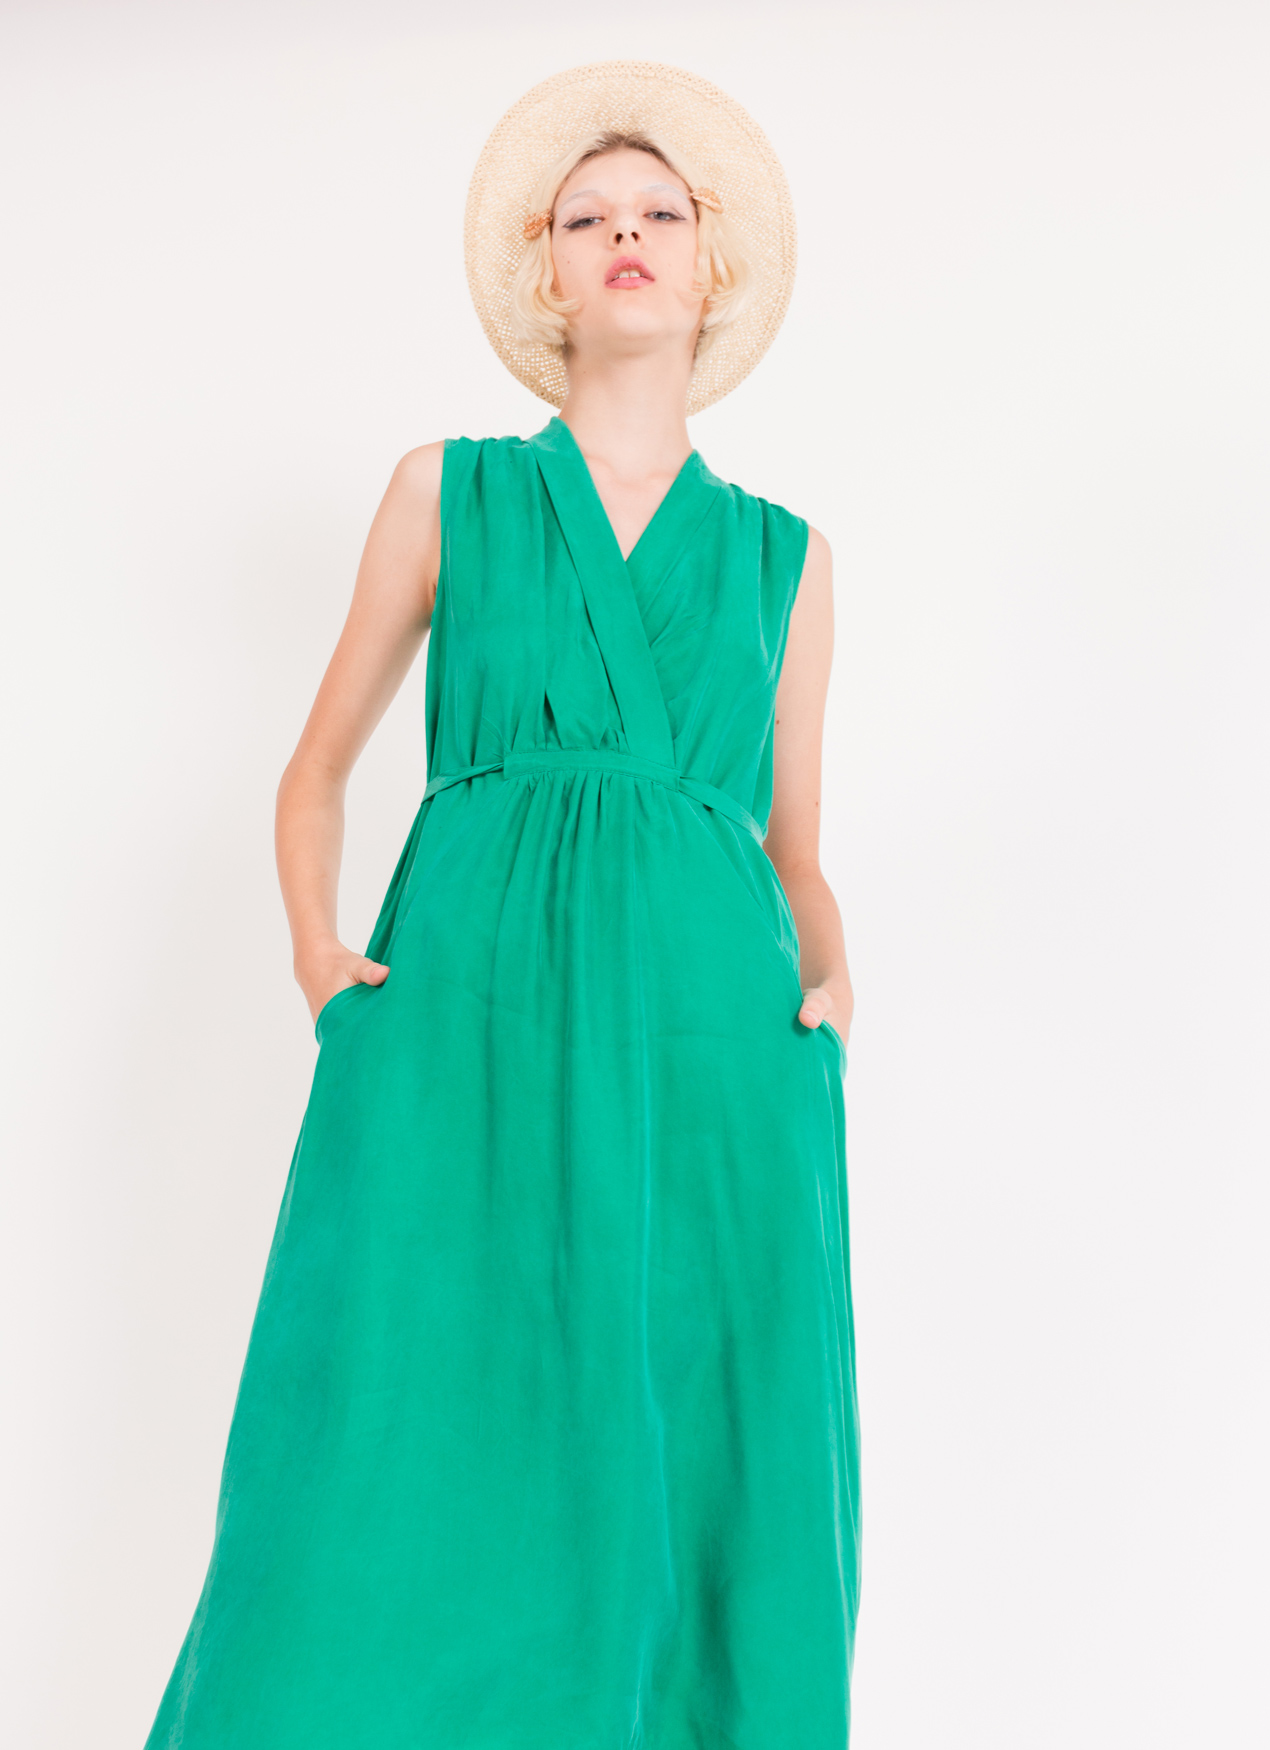 BOWN Analeigh Dress - Green